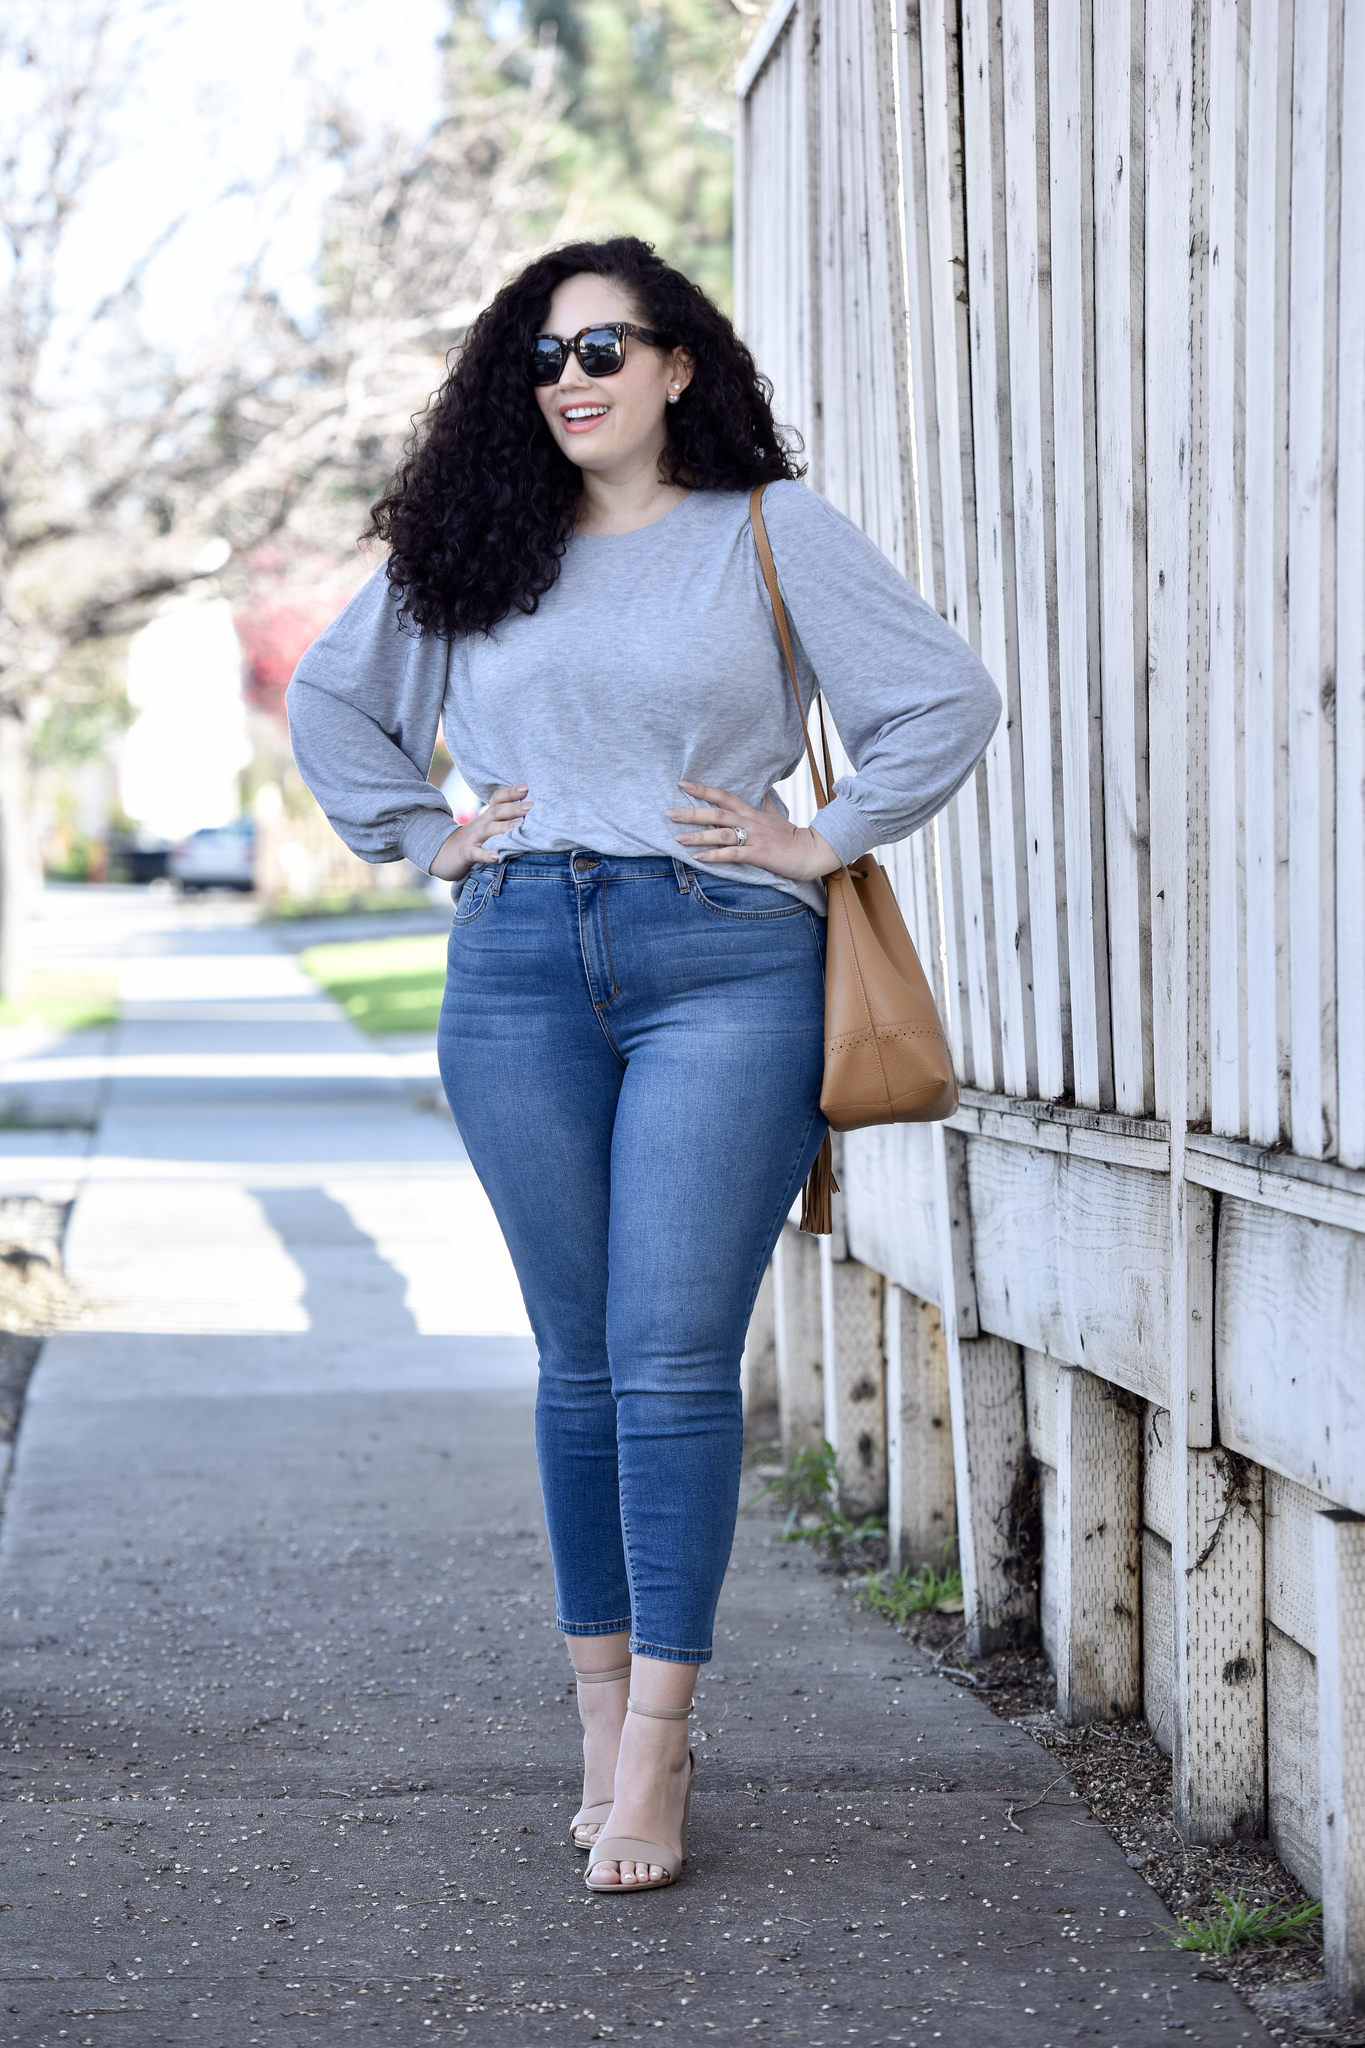 These Are The Best Jeans Under $25 via @GirlWithCurves #outfits #blogger #fashion #style #curvy #jeans